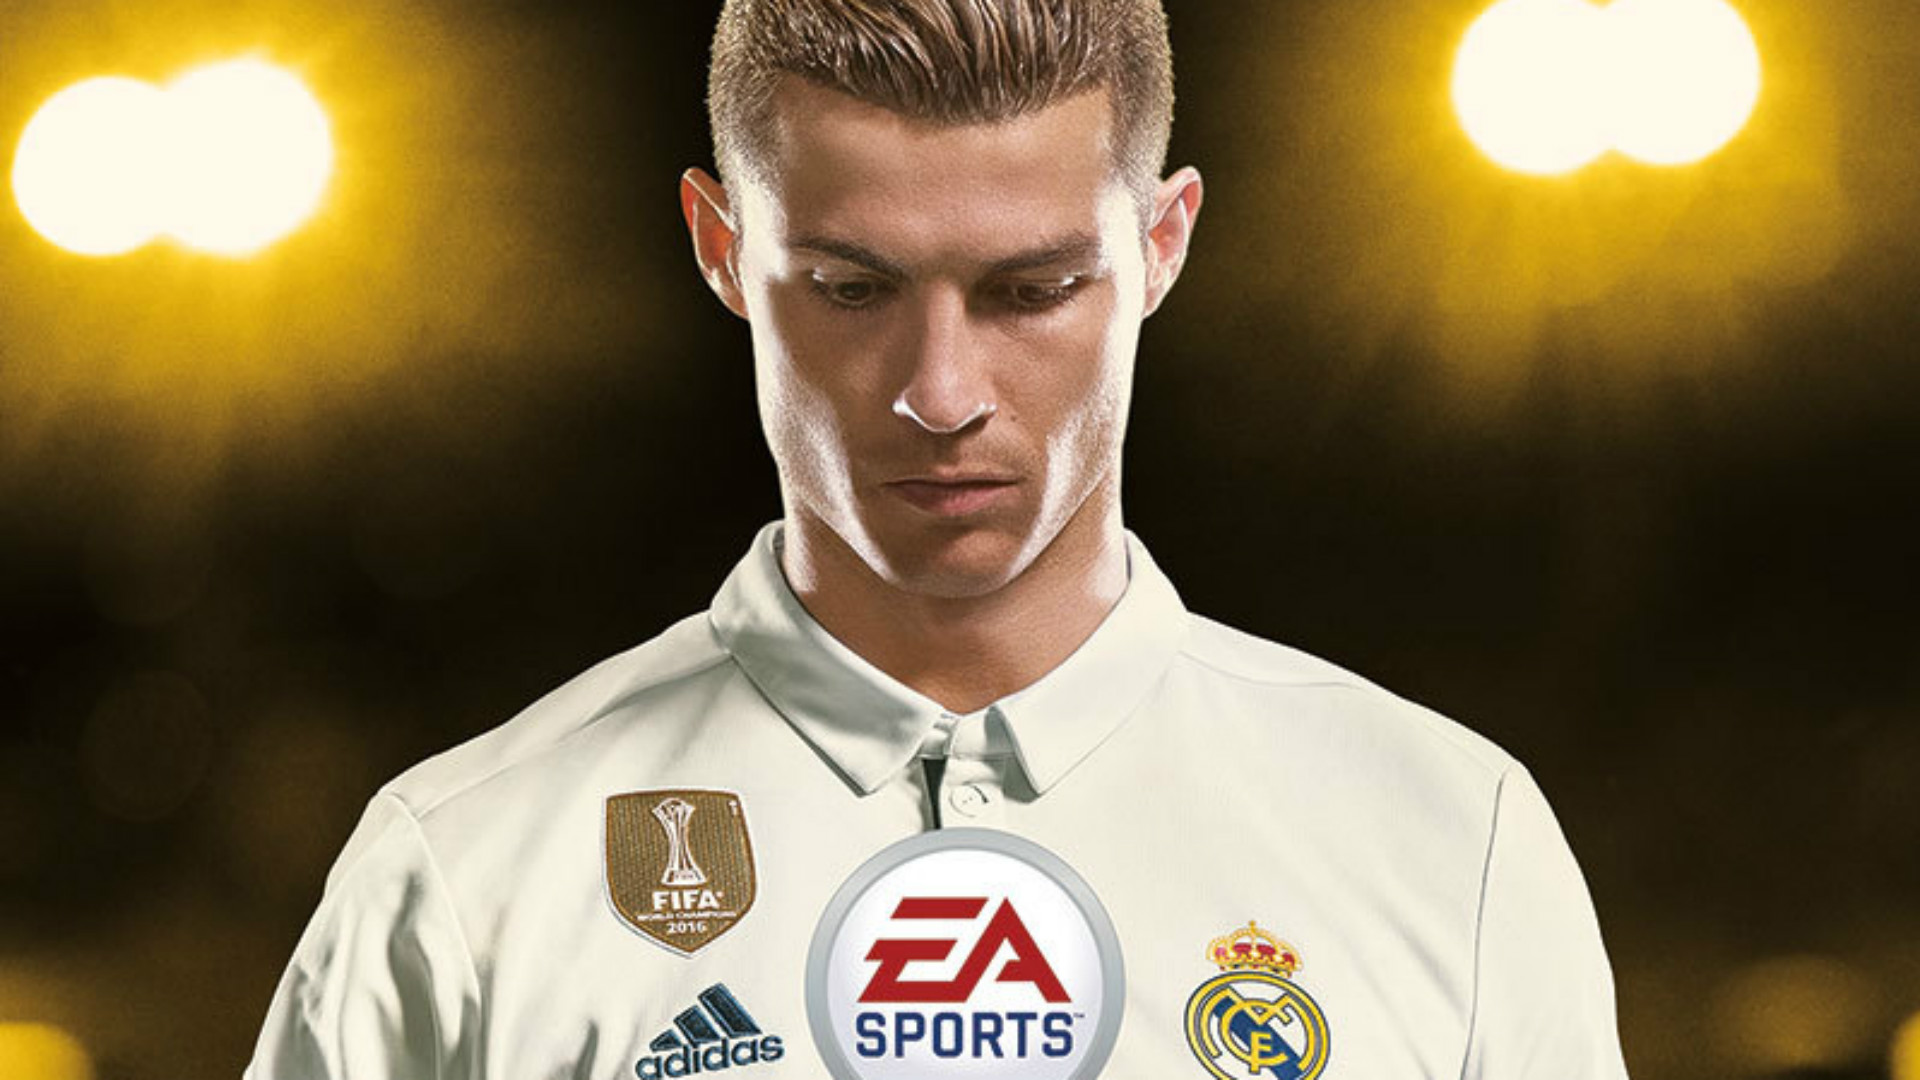 fifa 18 xbox one u0026 ps4 release dates cost preorder and complete guide goalcom